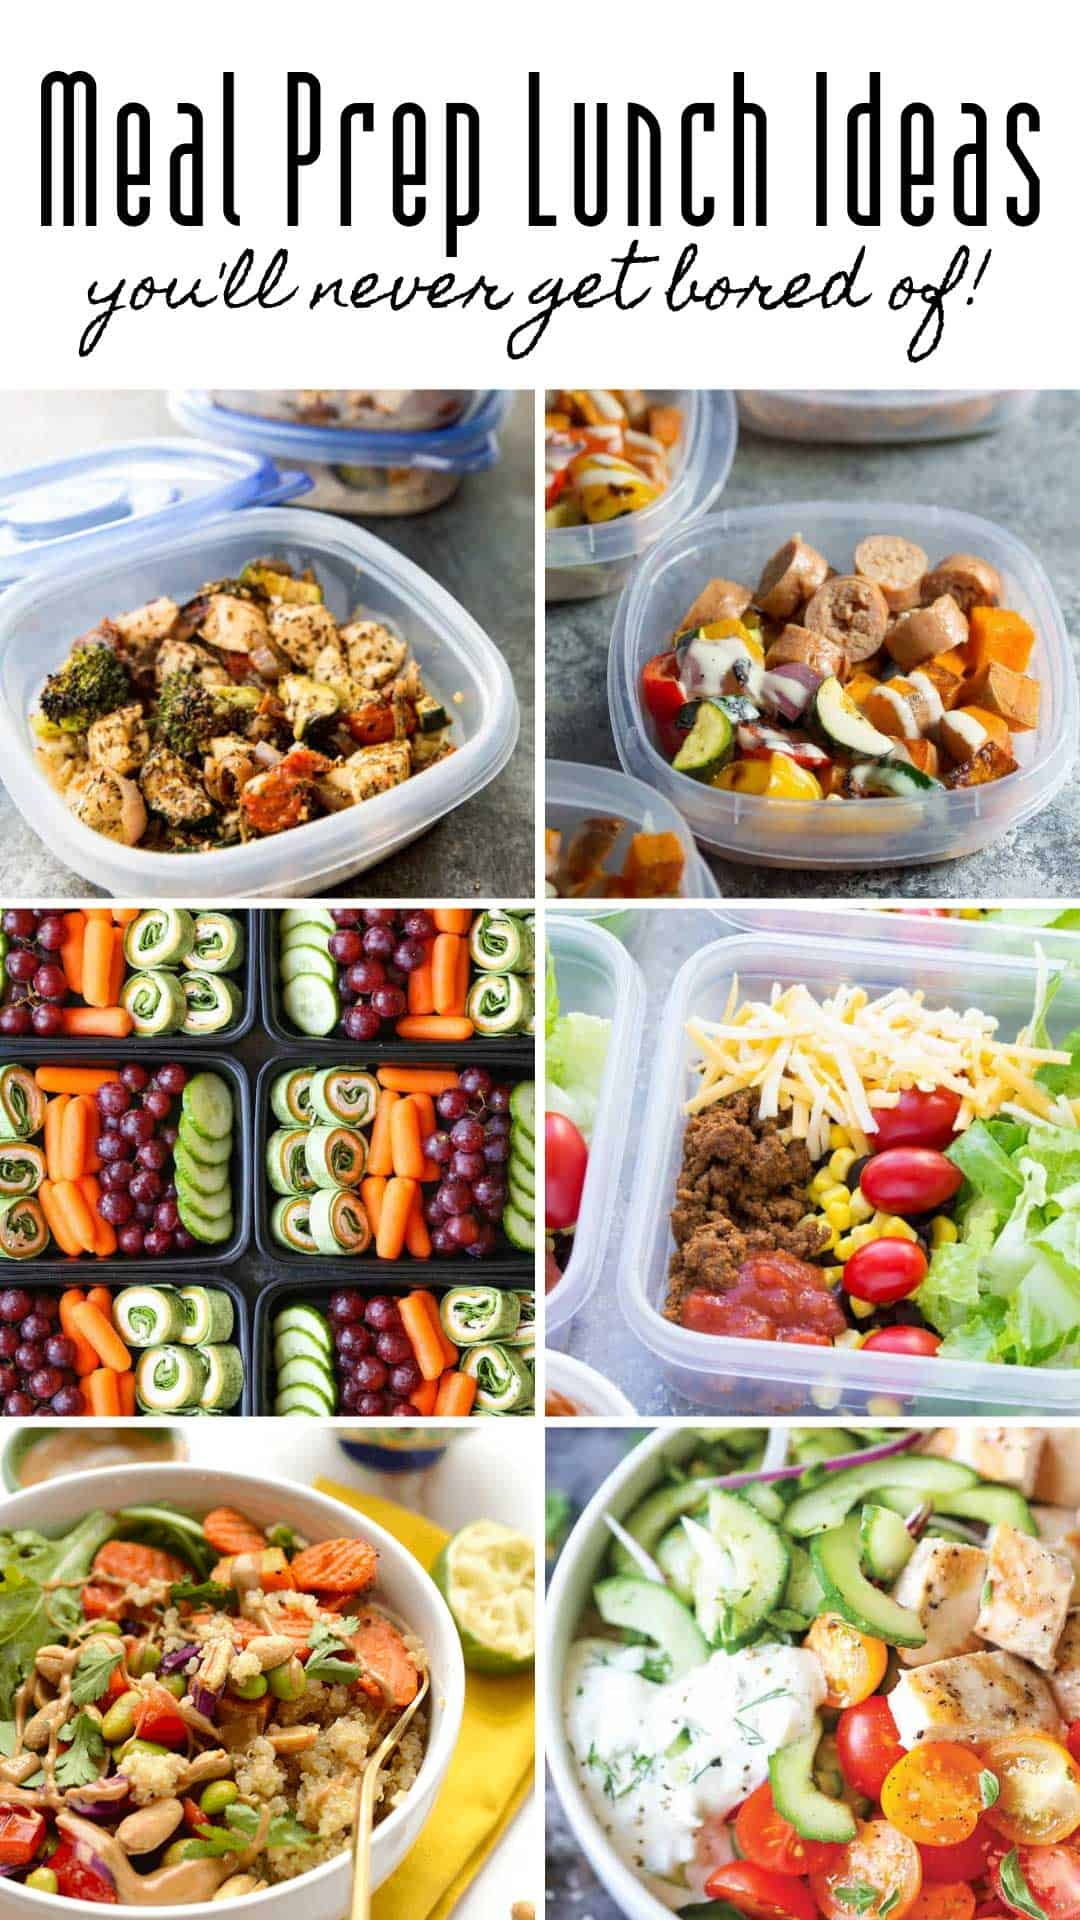 These healthy meal prep lunch ideas are just the recipes you need to eat well and save money. #mealprep